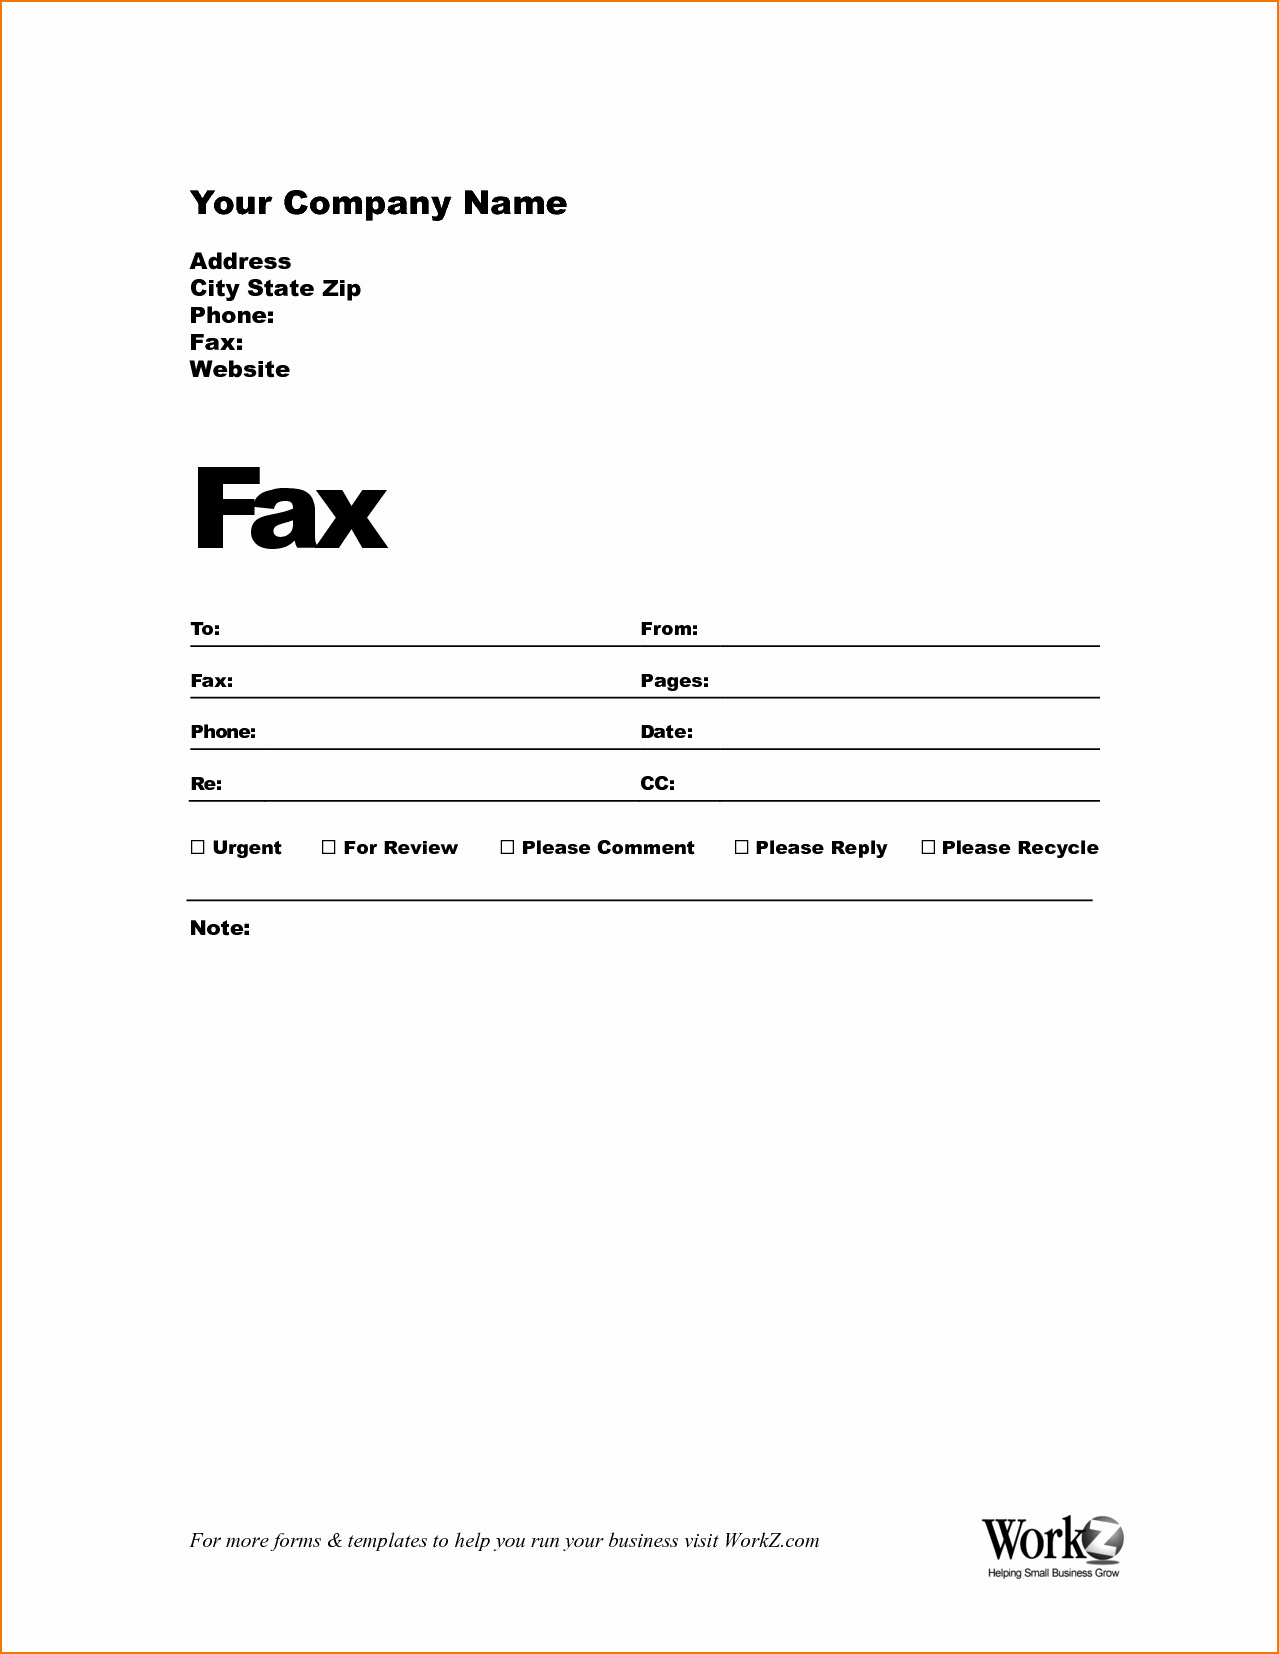 Sample Of Fax Cover Sheet Elegant 5 Fax Cover Sample